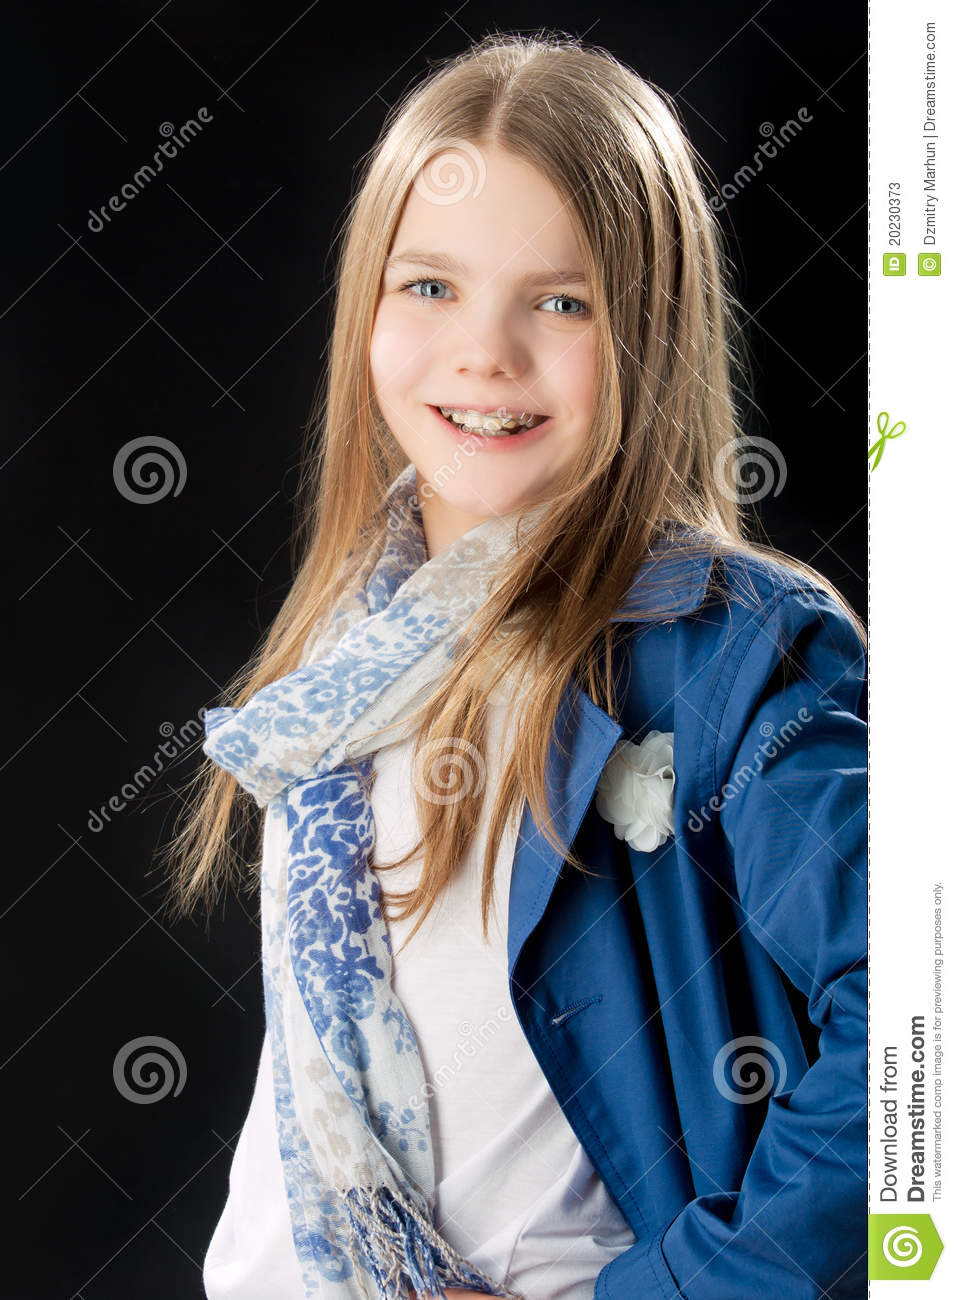 Video Girl Dress: Happy Smiling Caucasian Little Girl With Braces Stock